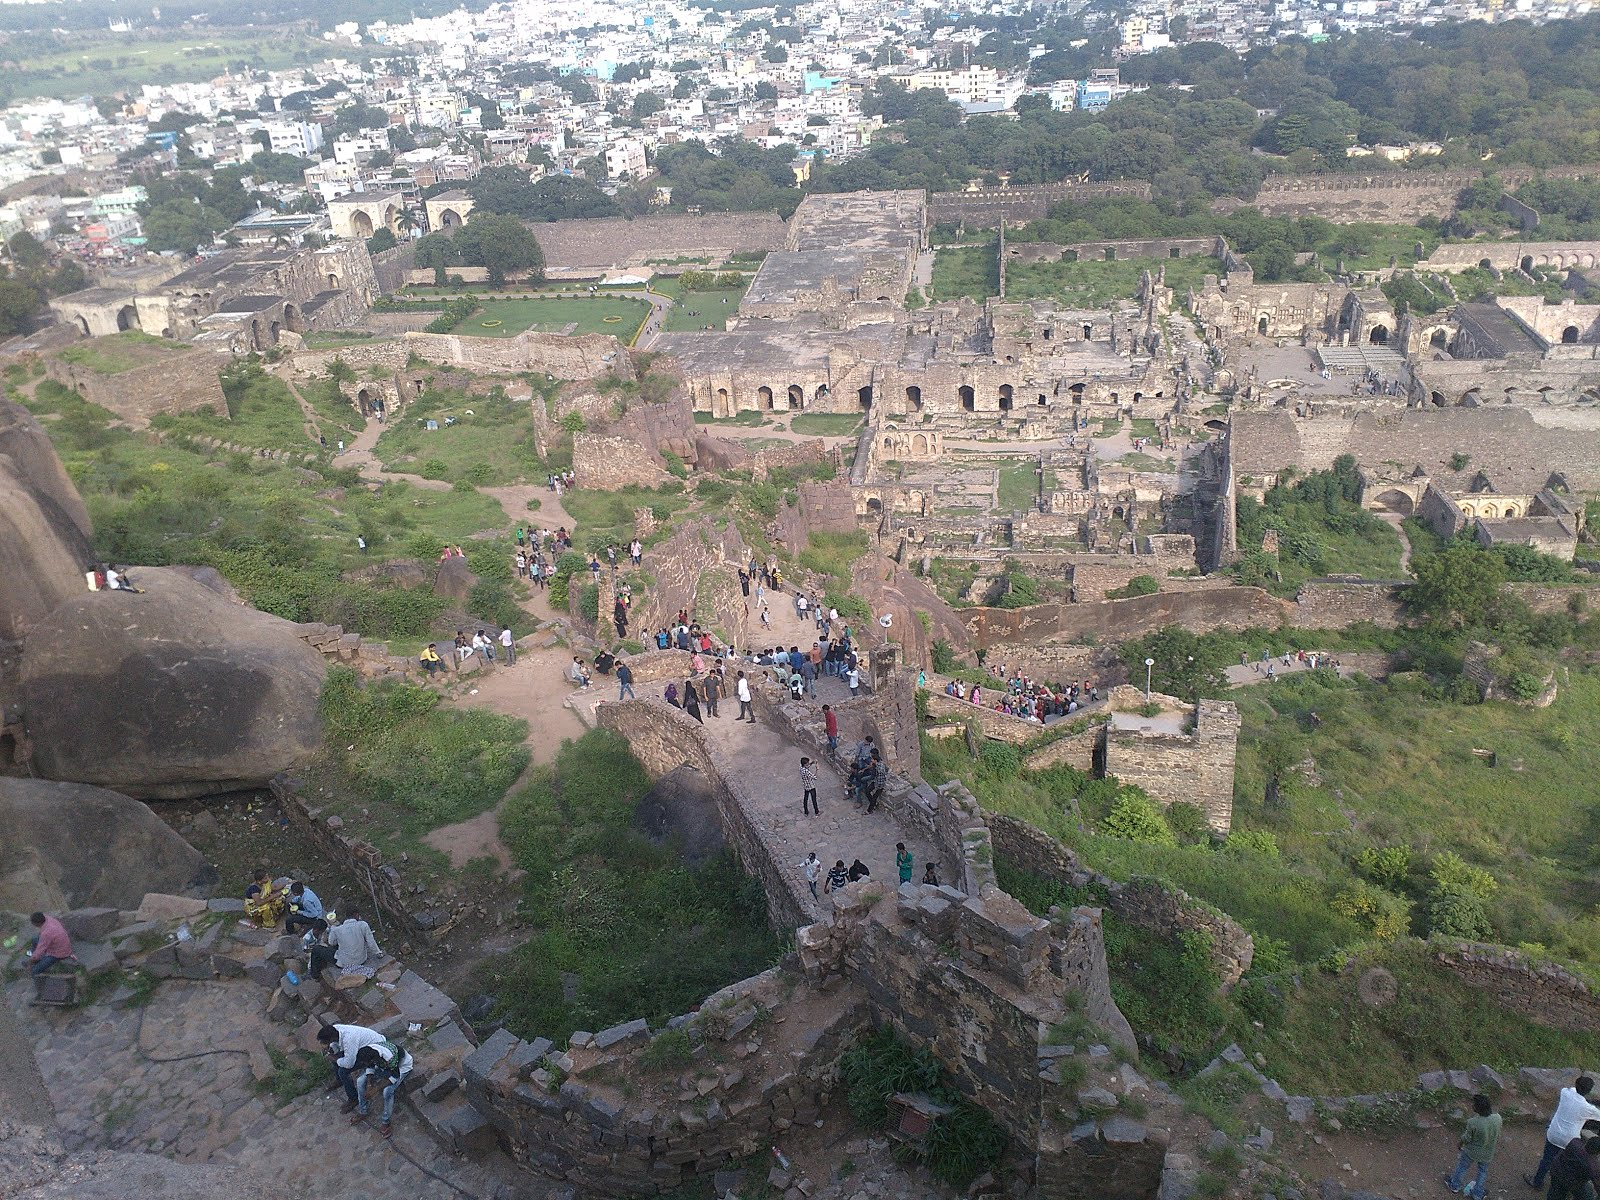 Golconda Fort - Depicts the history of Hyderabad | Siva